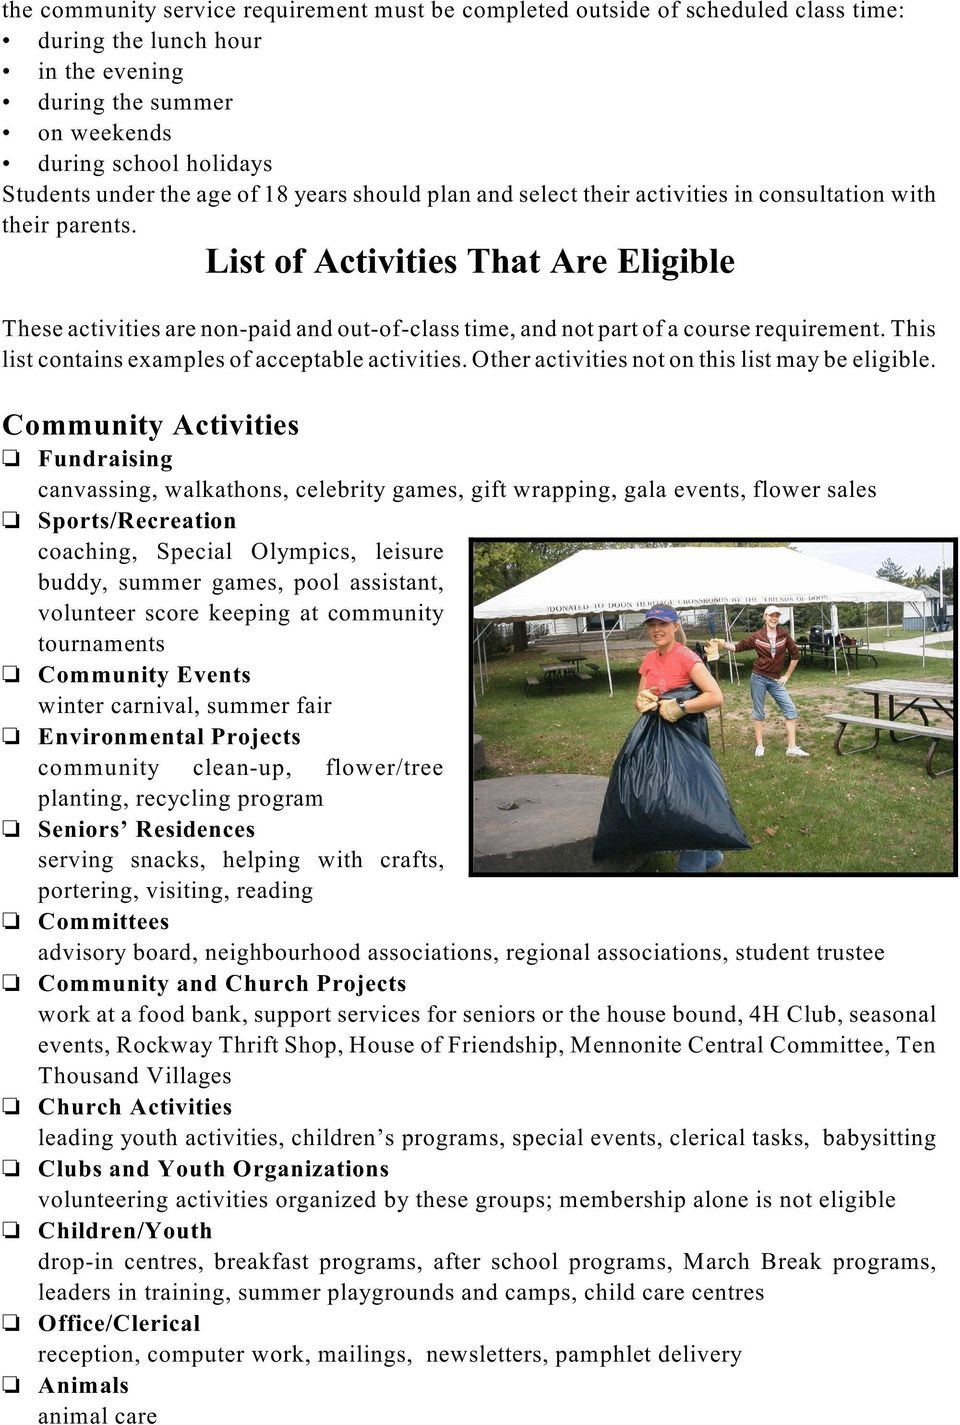 List of Activities That Are Eligible These activities are non-paid and out-of-class time, and not part of a course requirement. This list contains examples of acceptable activities.